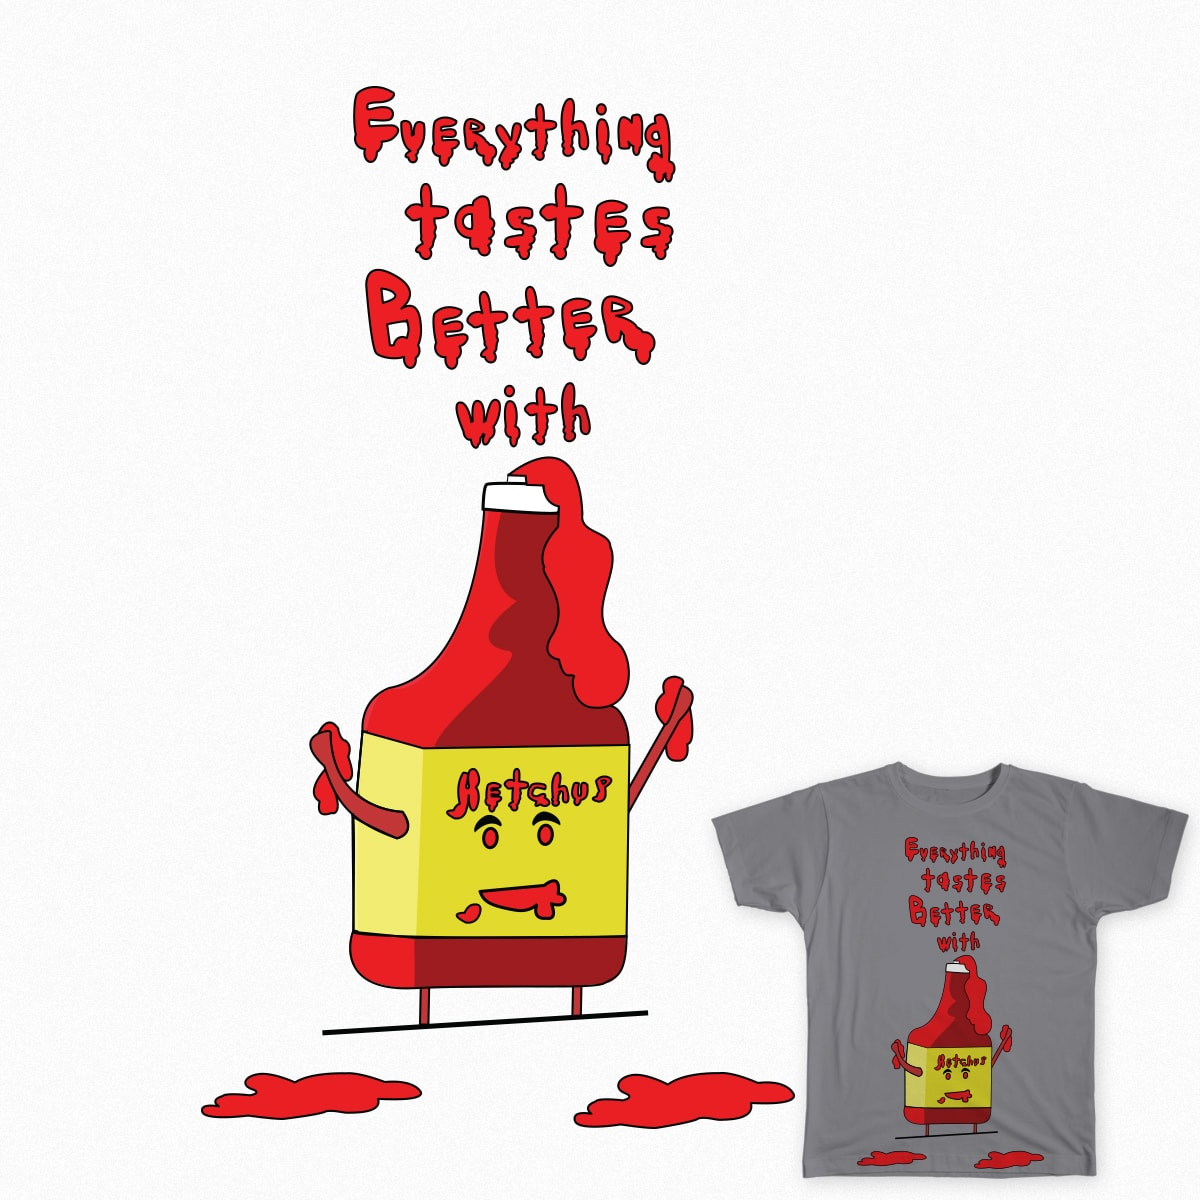 everything tastes better with ketchup by garry268 on Threadless